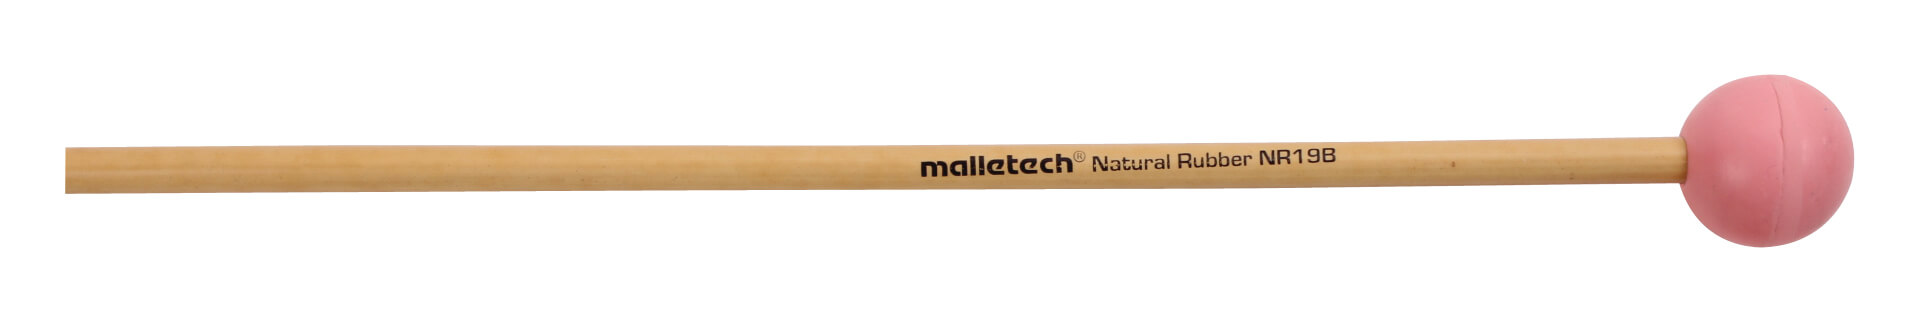 Malletech NR19R Natural Rubber Series